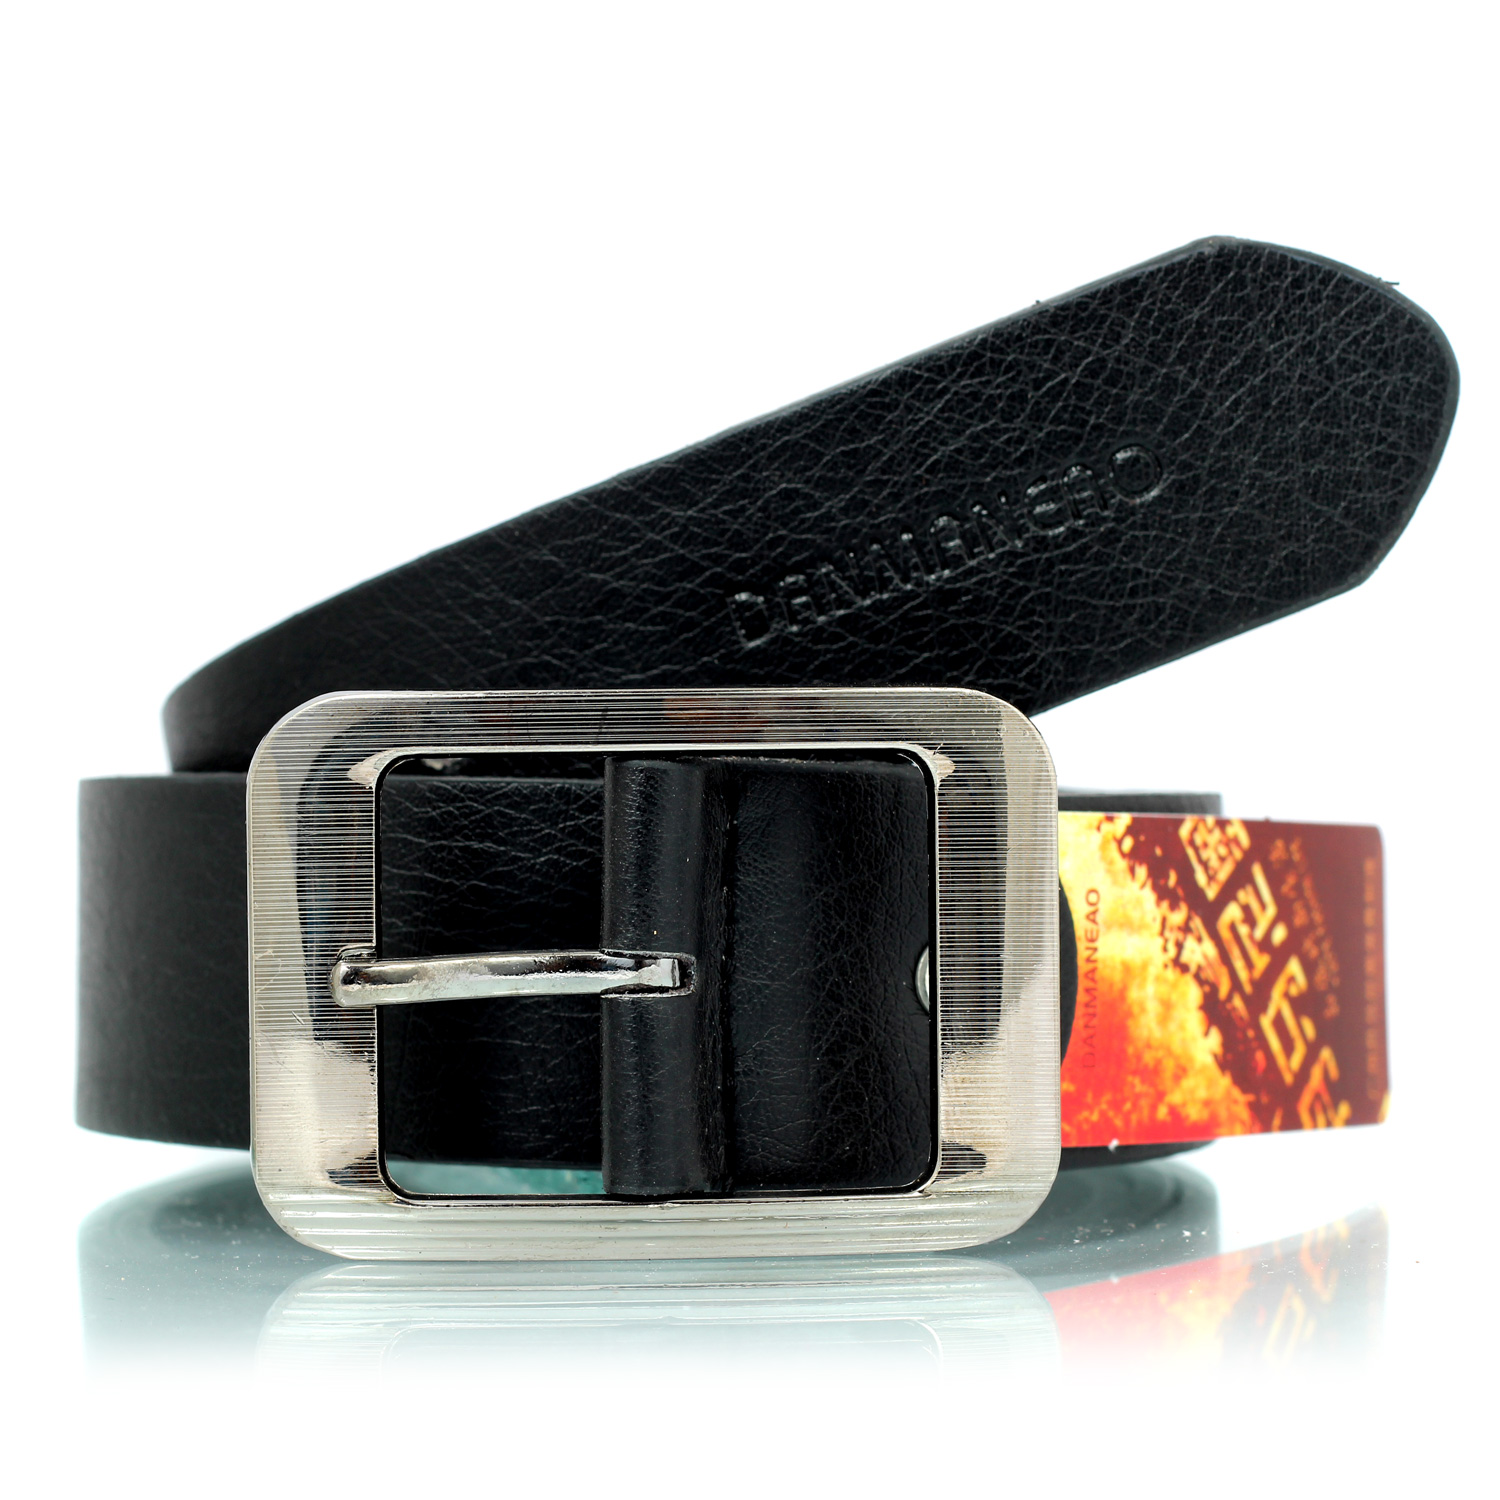 Strip design metallic buckle rough textured official belt for men